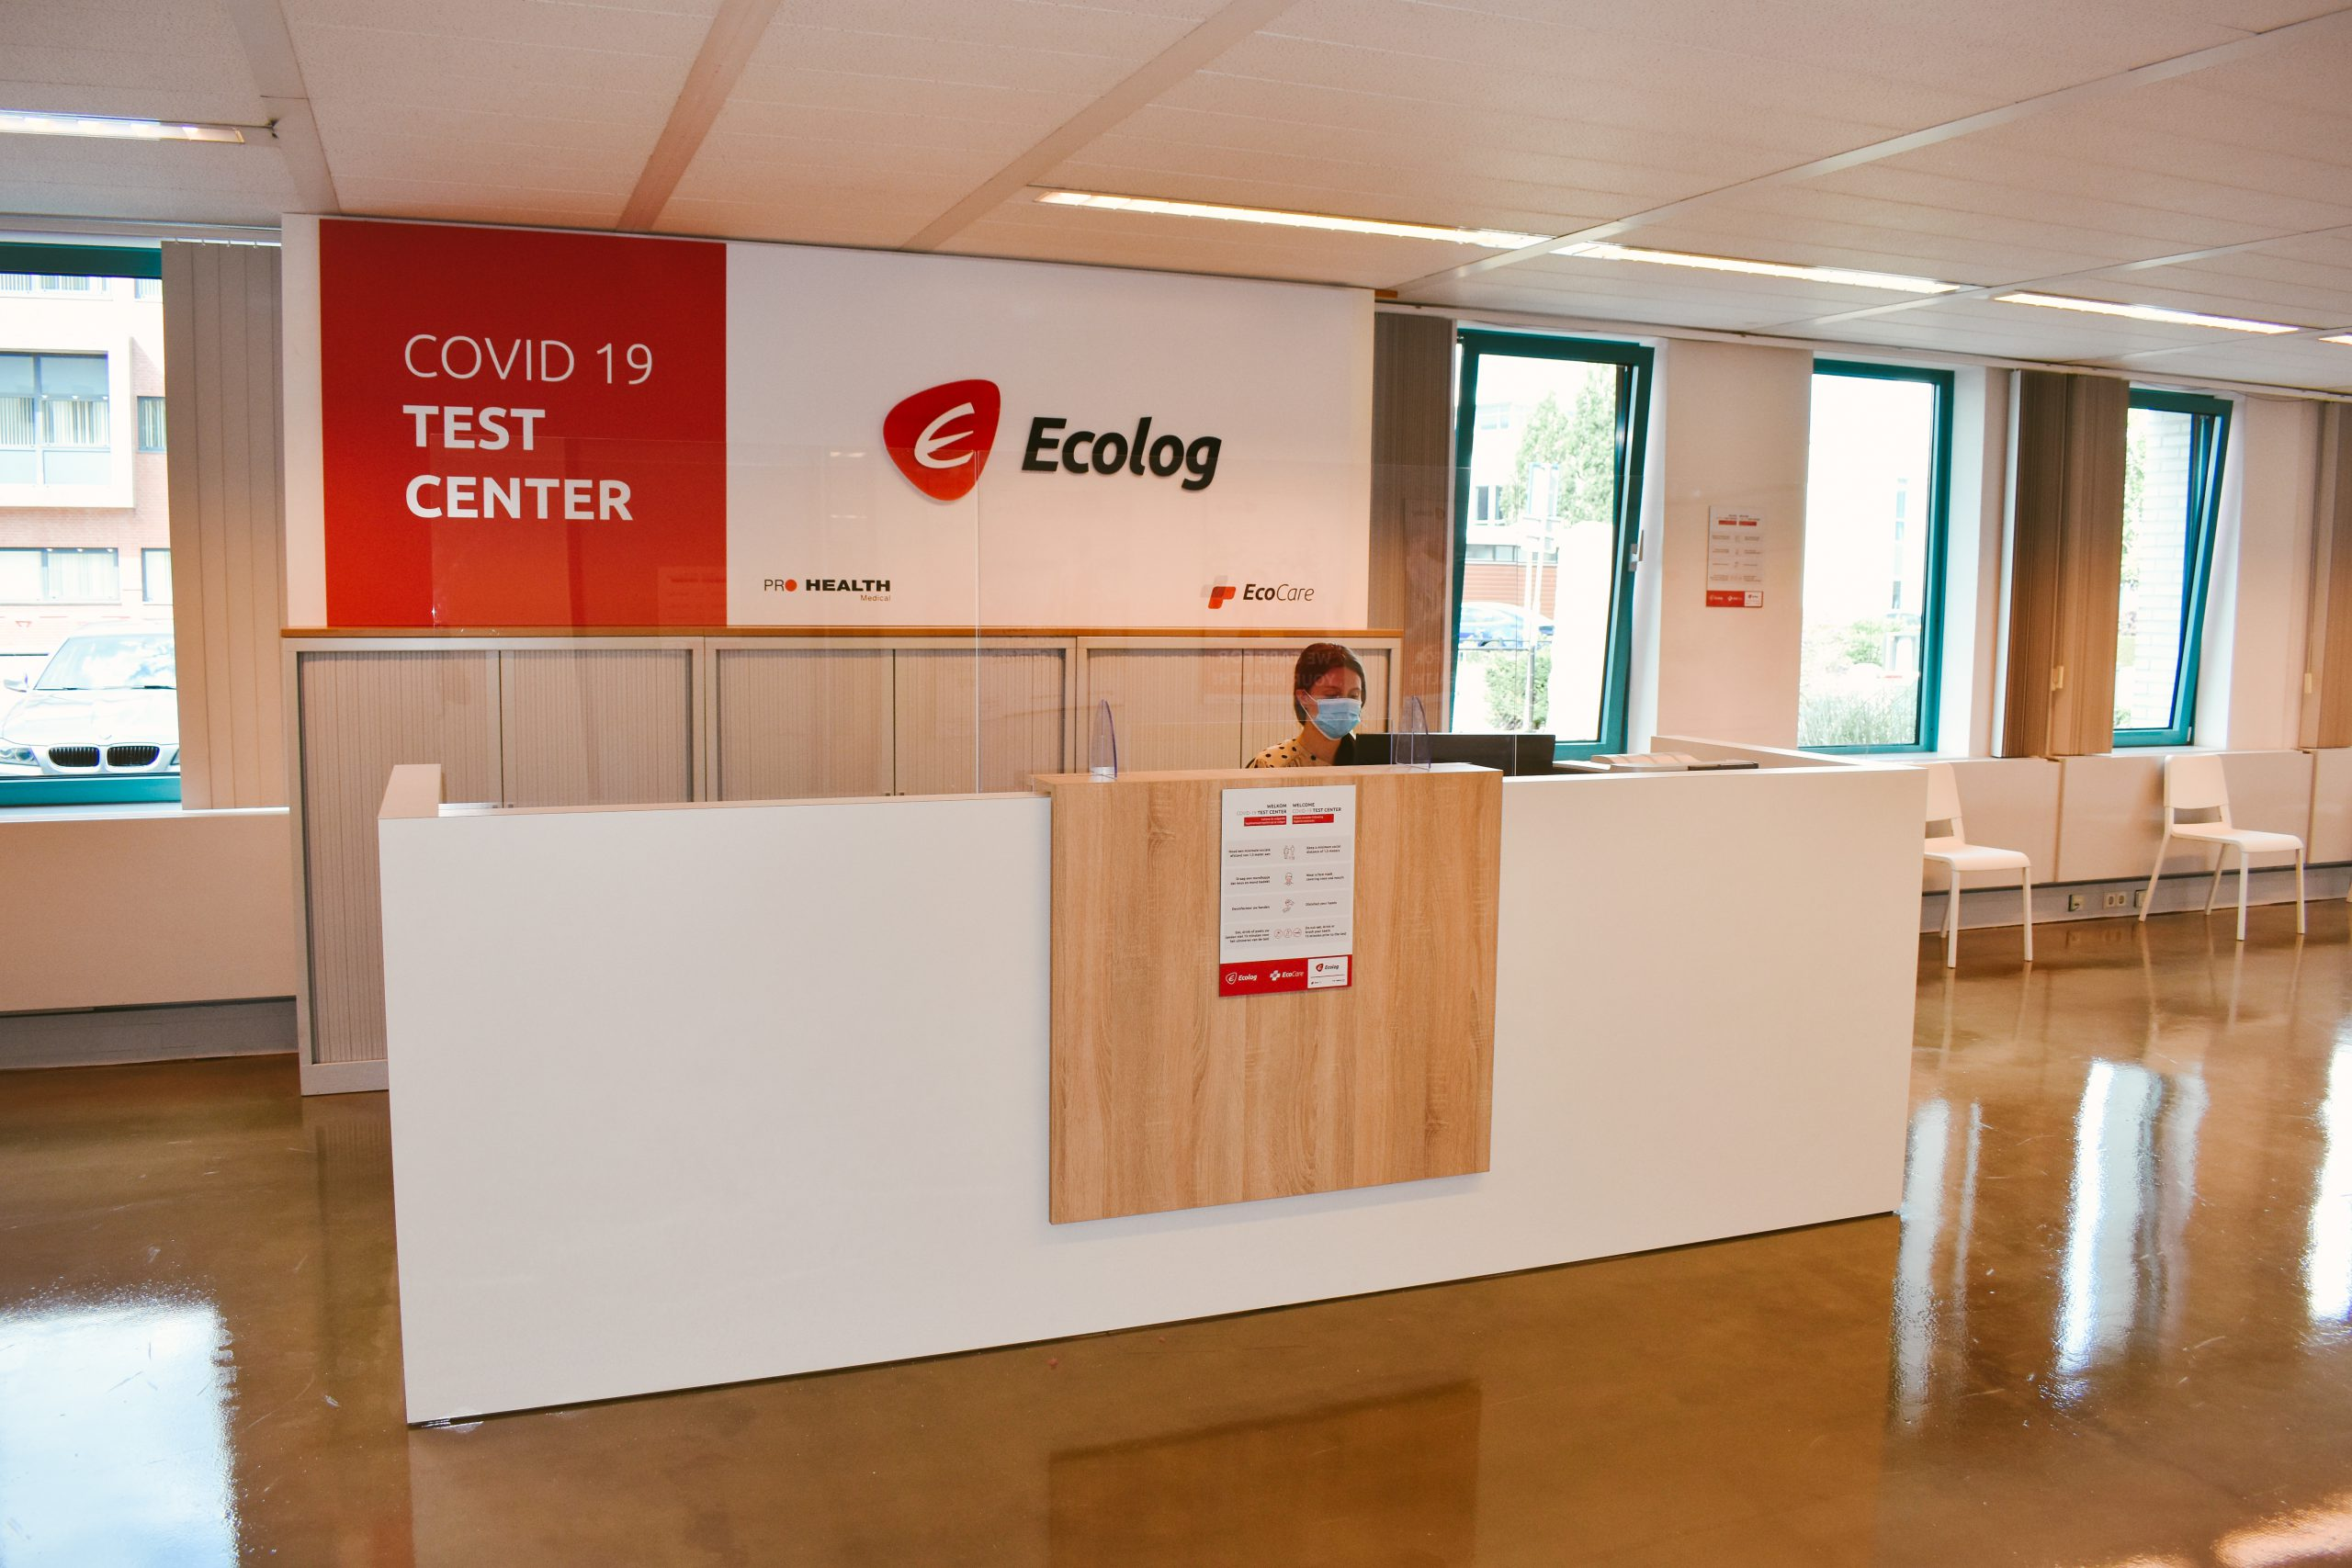 Ecolog announces the opening of its COVID-19 Walk-In Test Center at Eindhoven Airport